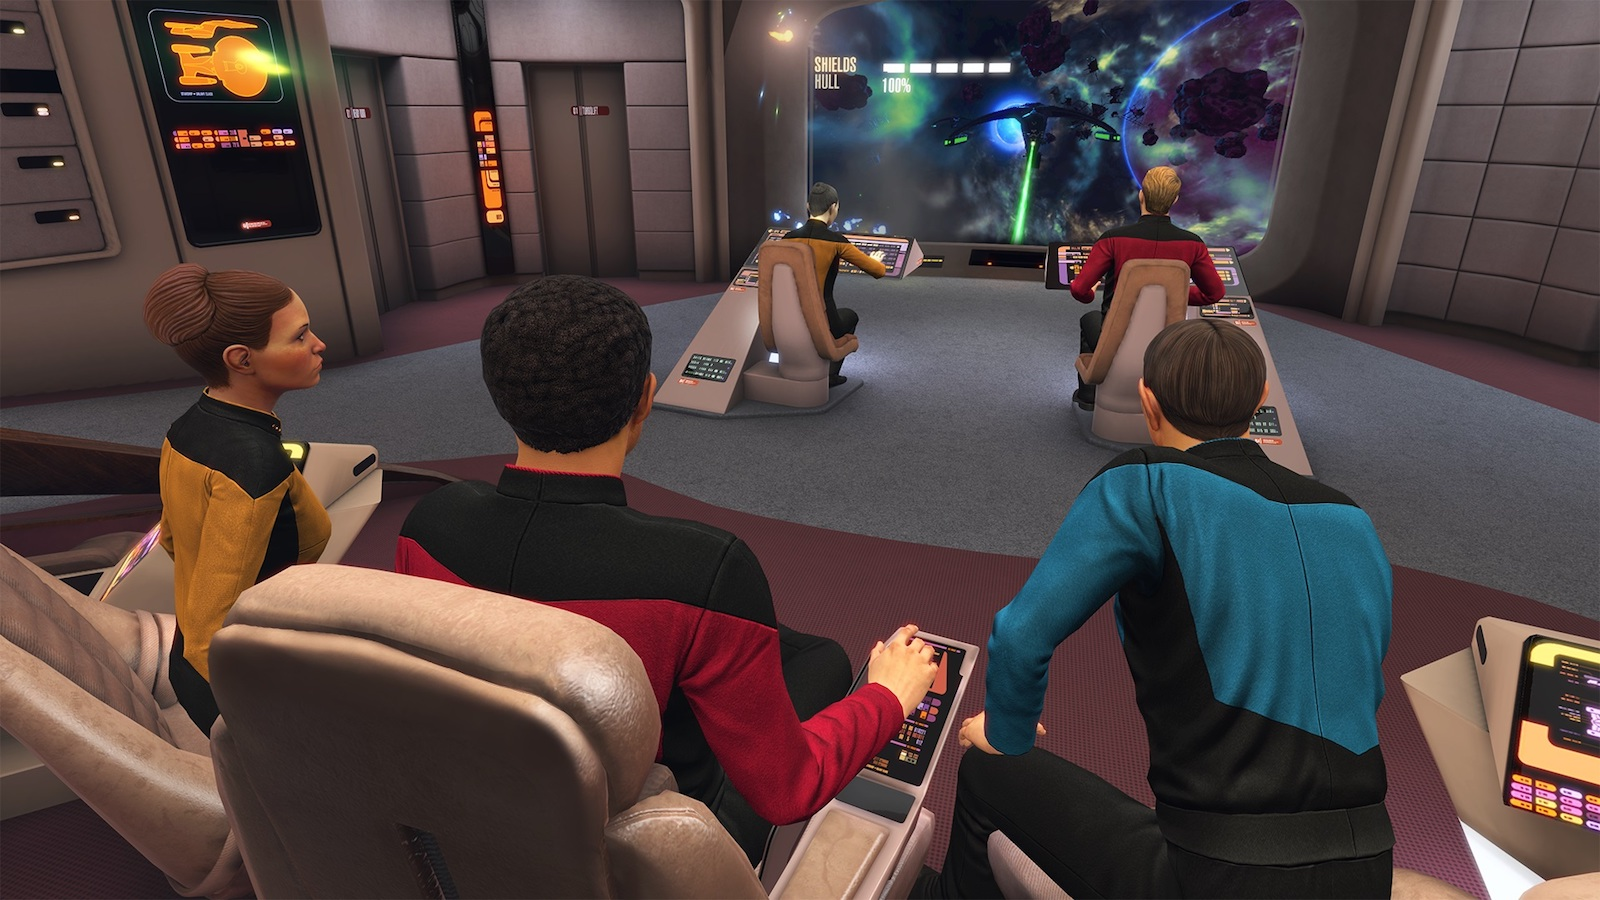 Next Generation DLC Coming To Star Trek: Bridge Crew On May 22nd